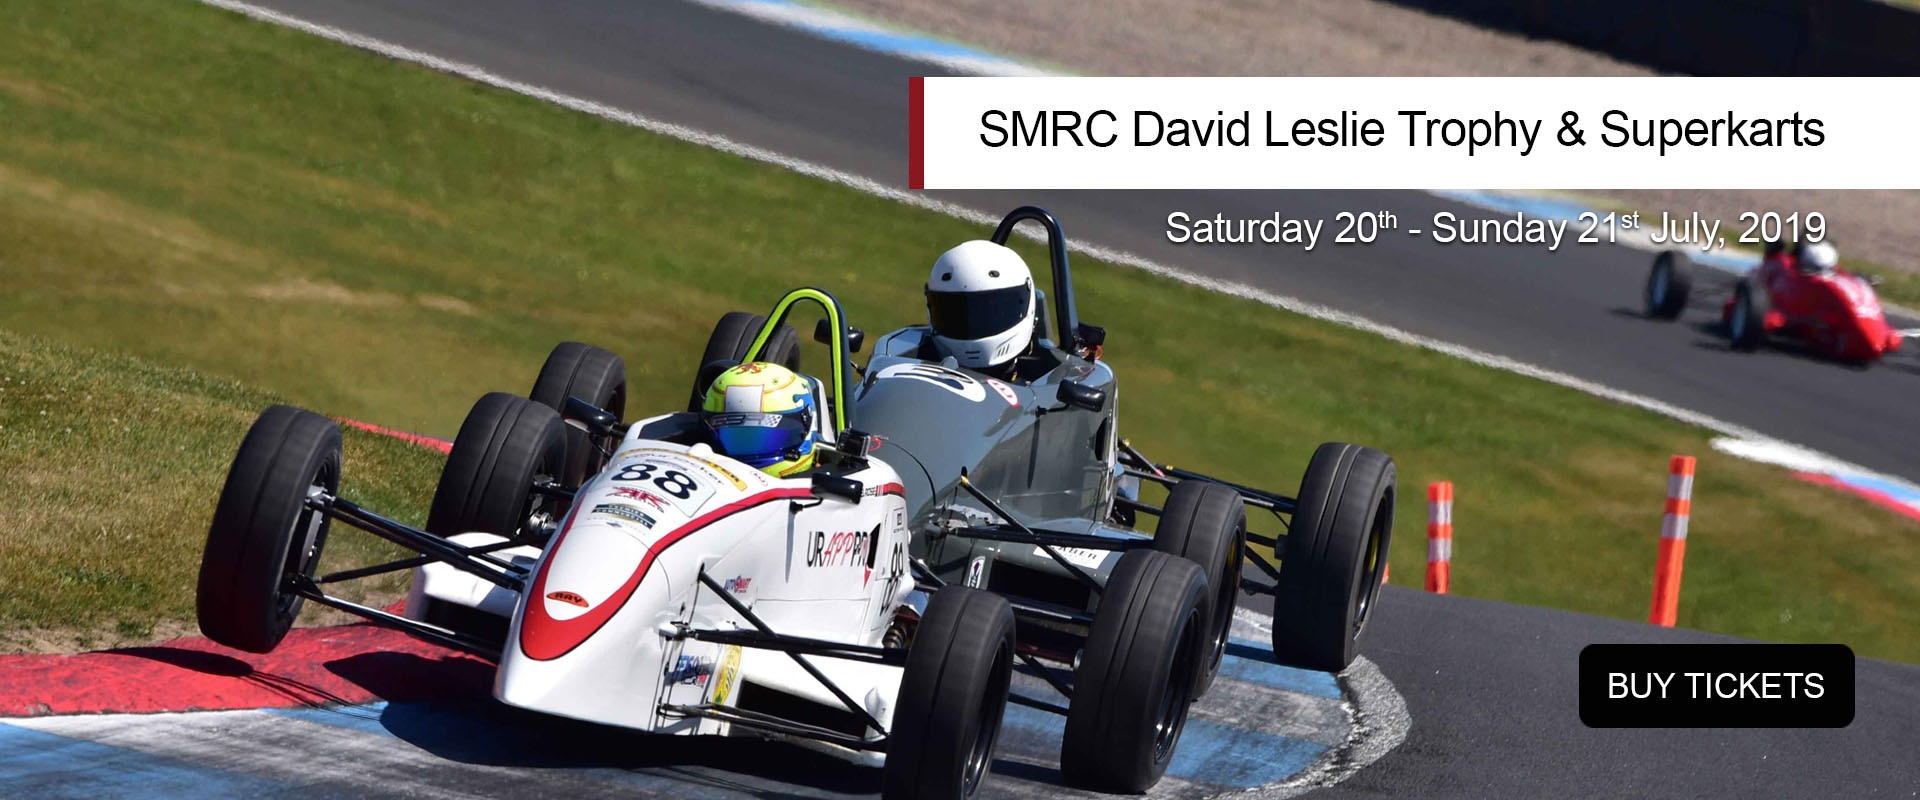 SMRC David Leslie Trophy & Superkarts